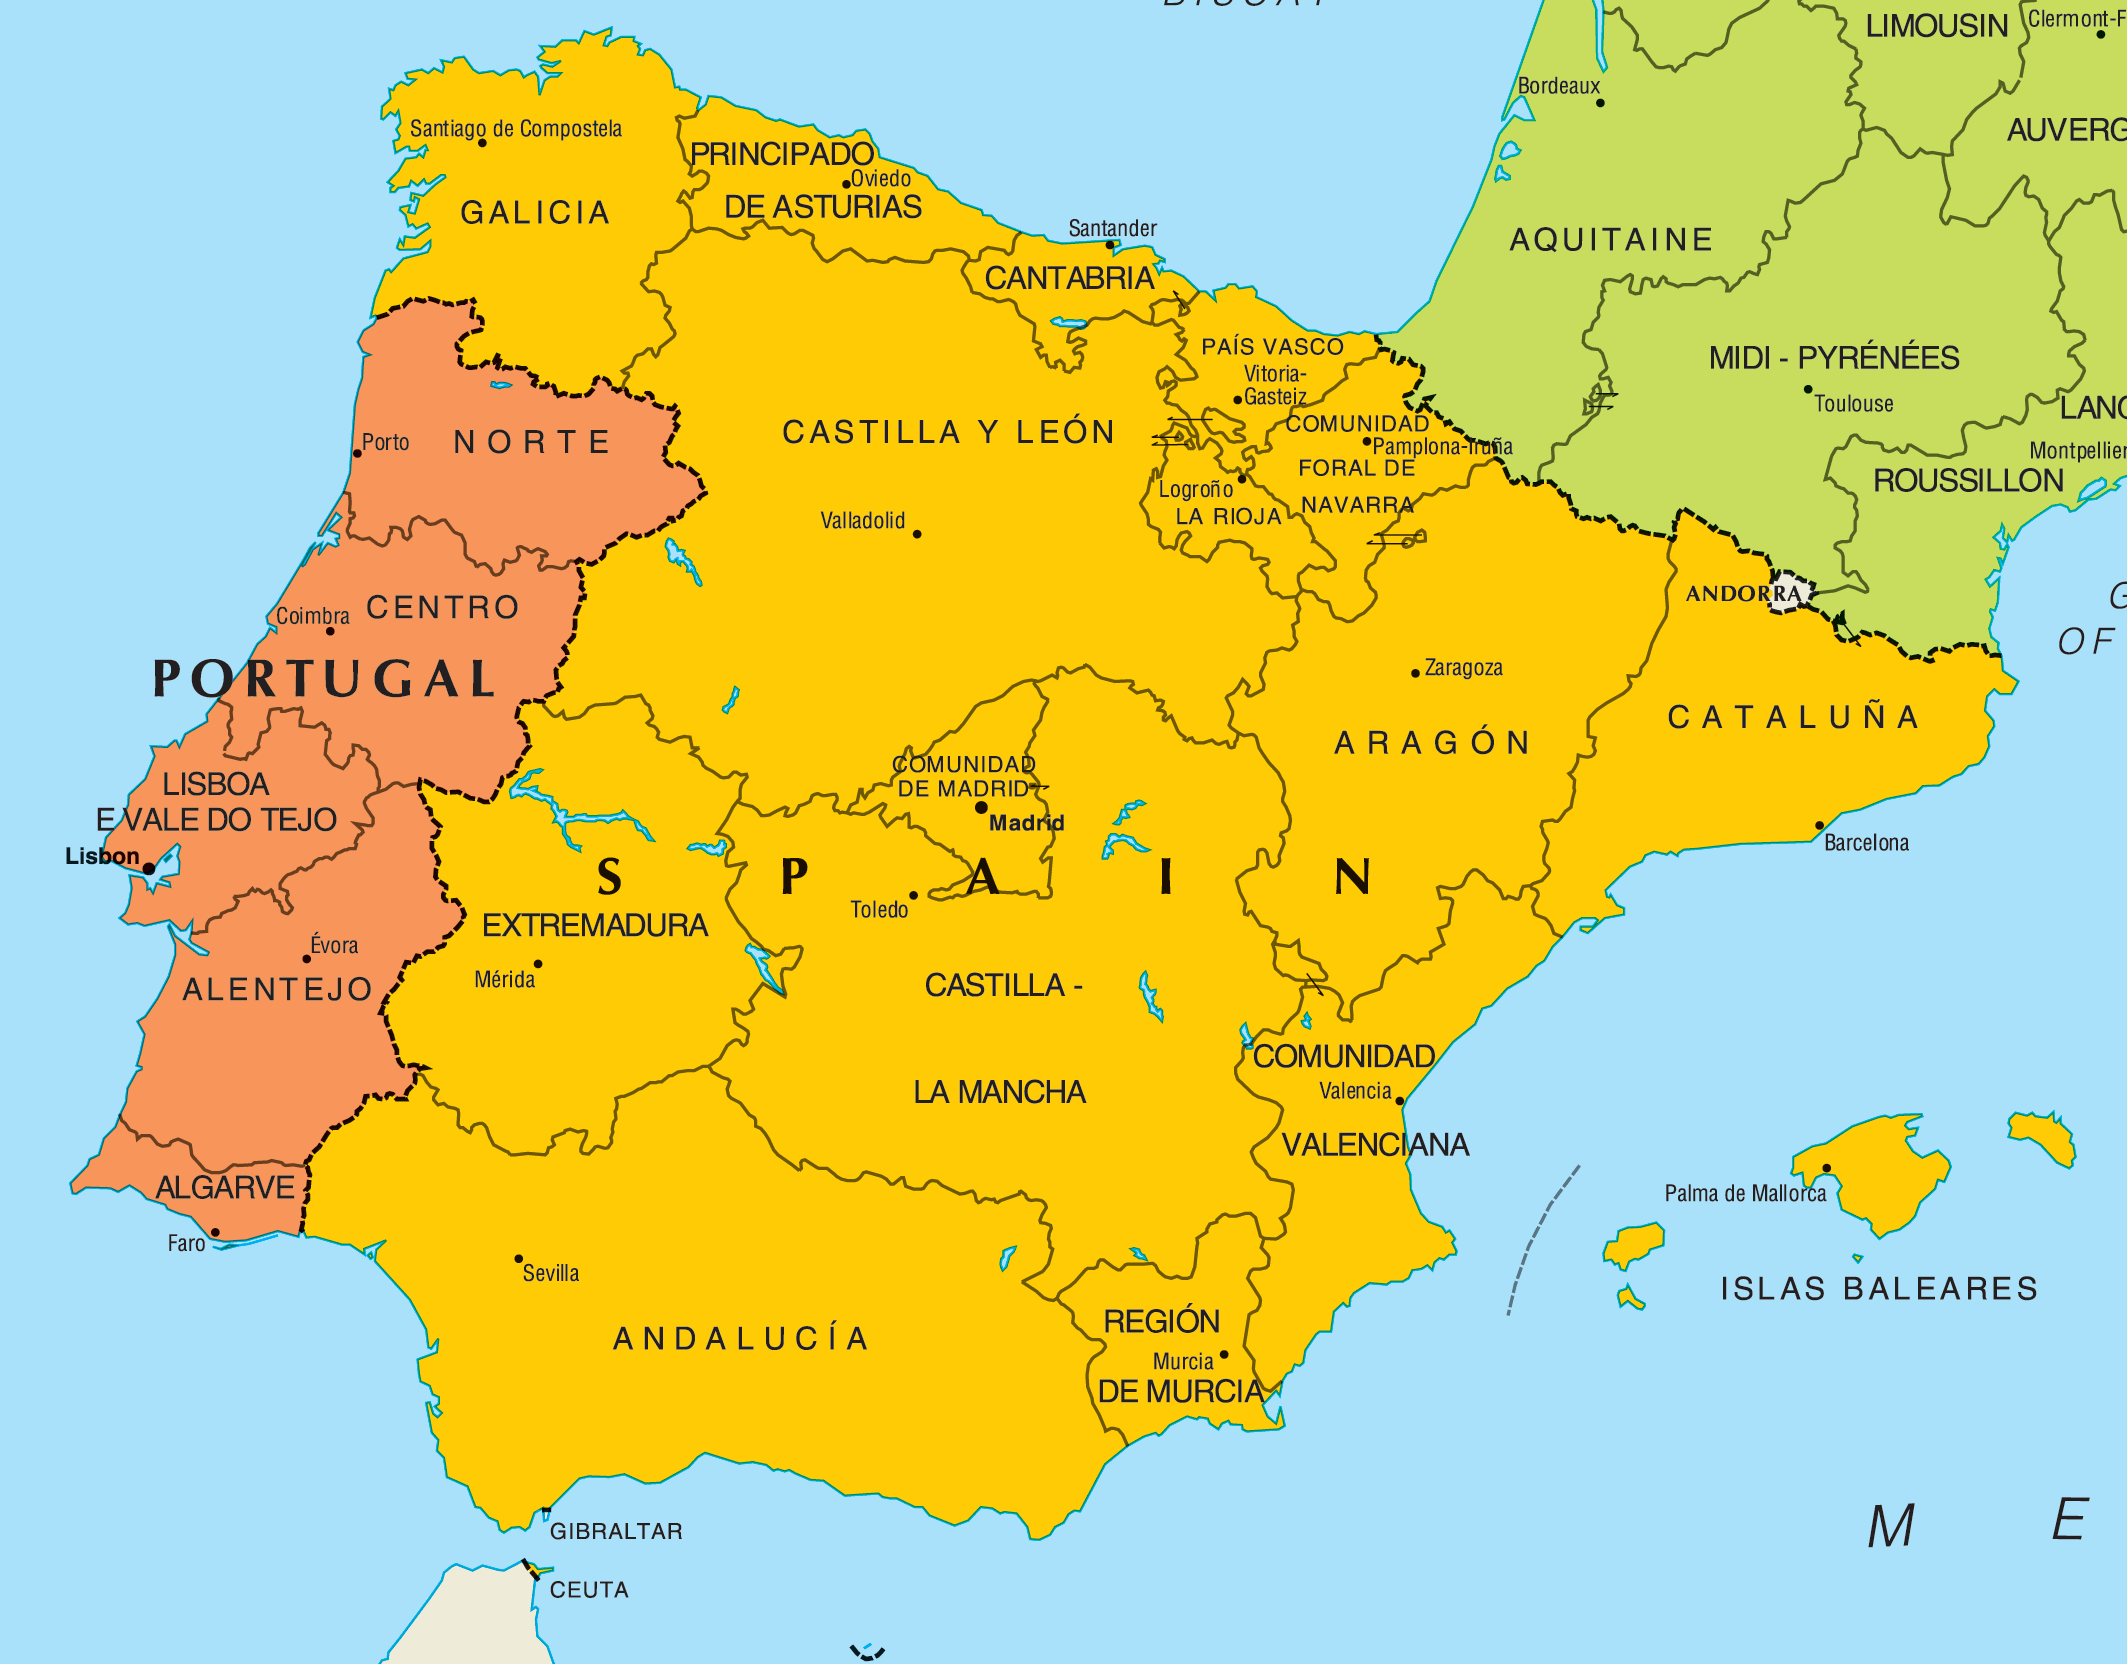 Spain And Portugal Map Portugal And Spain • Mapsof.net